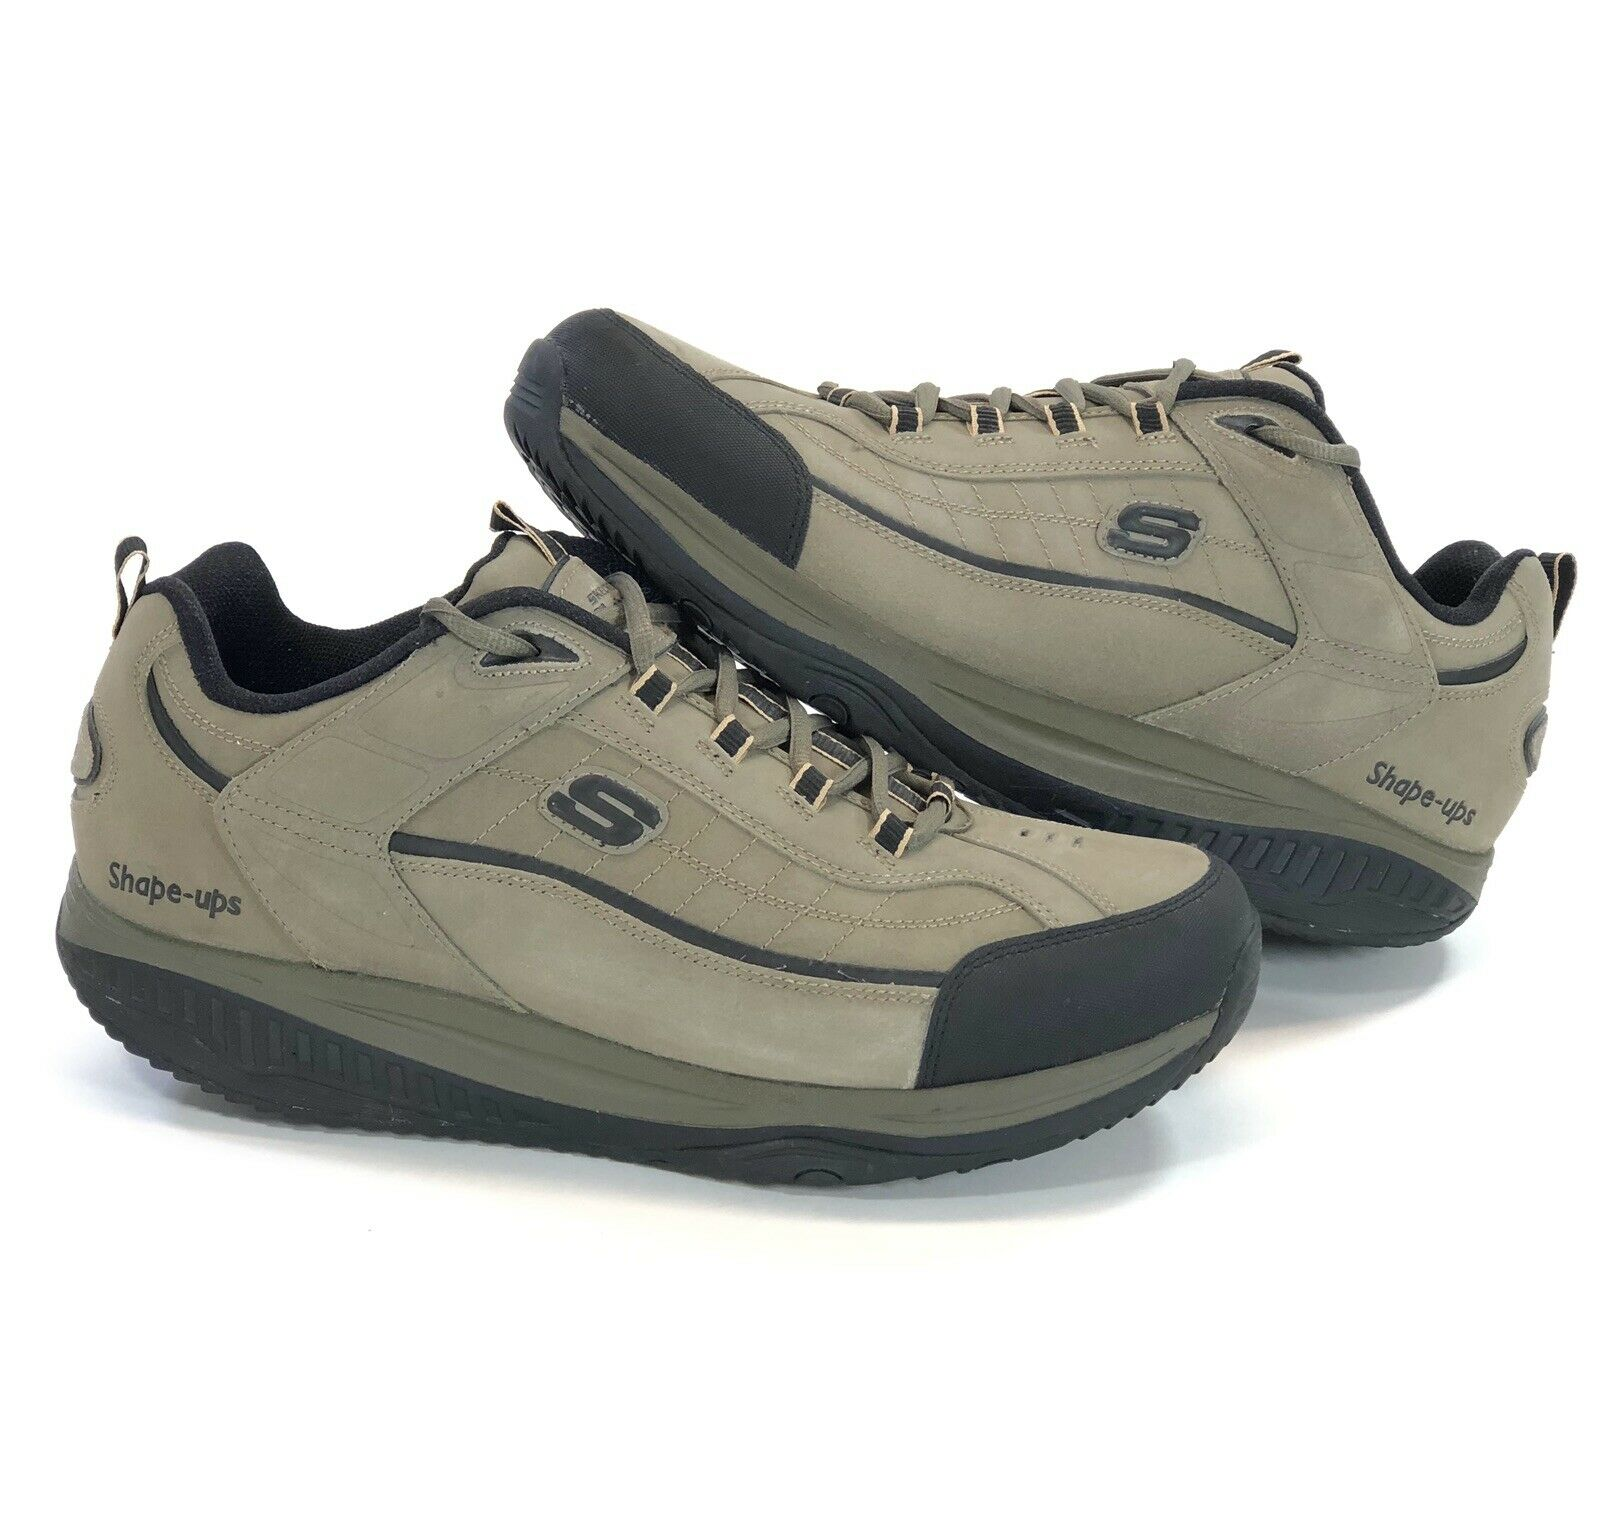 sports shoes f6f0c 583fb Skechers Shape-Ups Mens Size 16 Fitness Walking shoes Suede Leather 52000EW